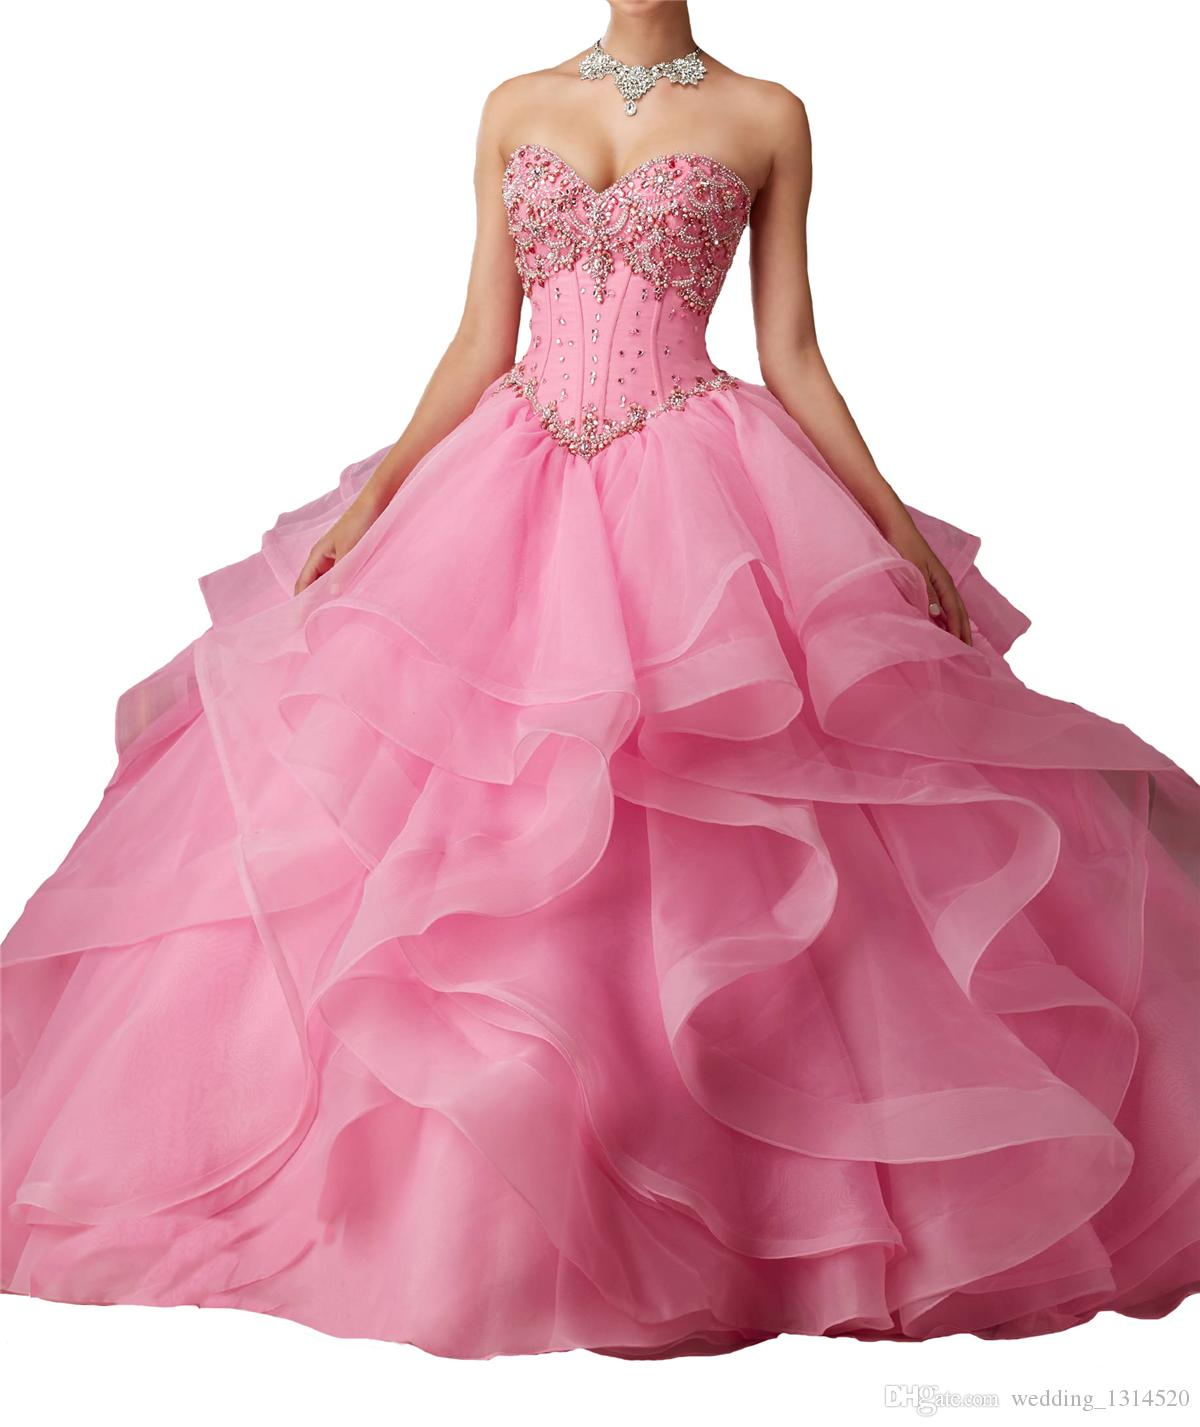 Women Quinceanera Dresses New Style Sweetheart Crystal Ruffles Floor Length Corset Back Long Girls 15 16 Party Ball Gowns with free jacket